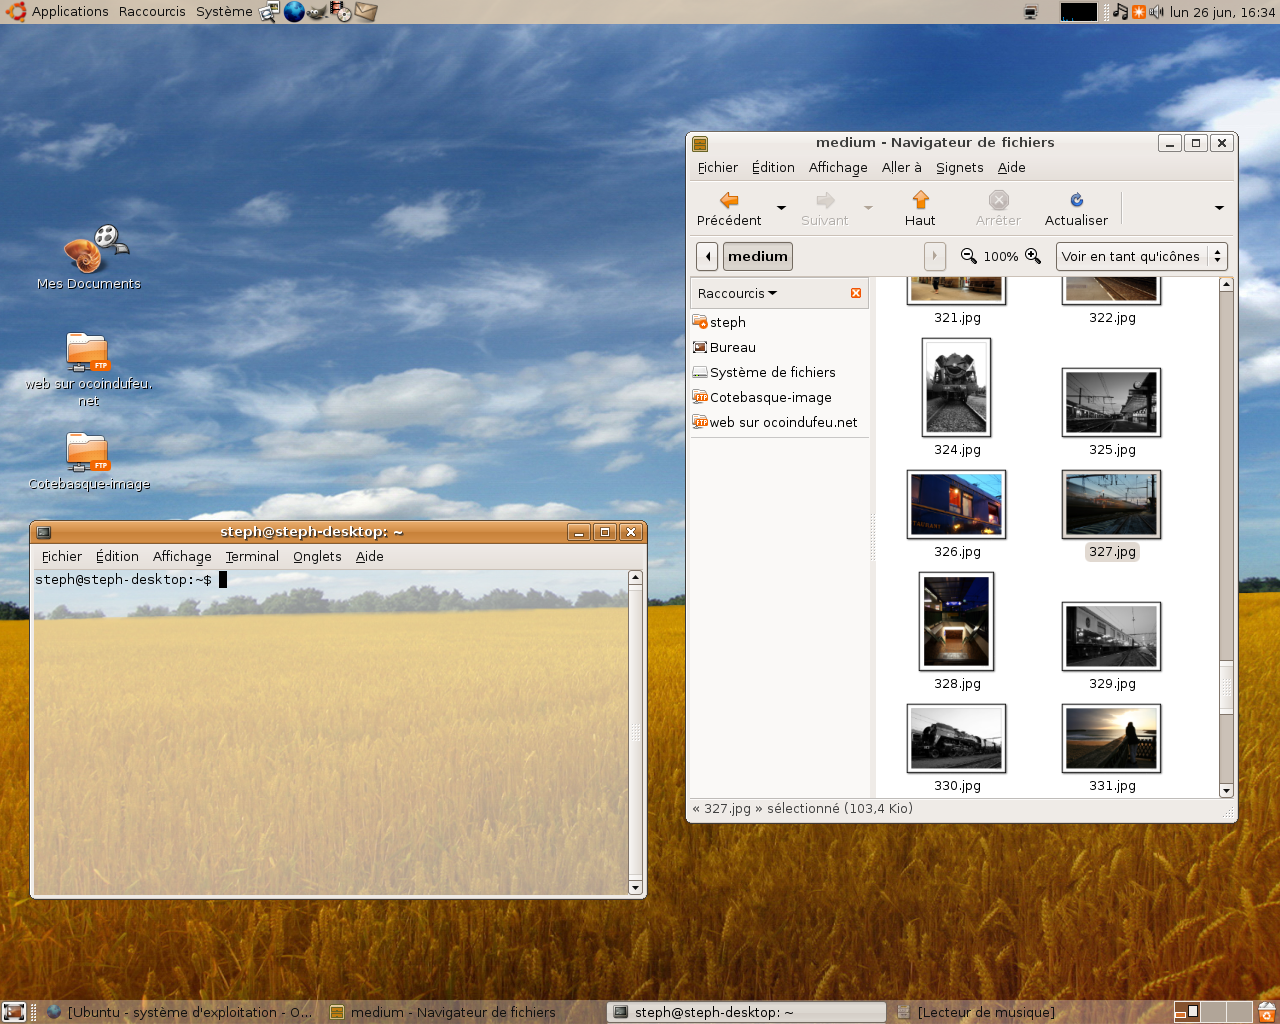 Ubuntu 7.10 desktop amd64 iso with http webseeds